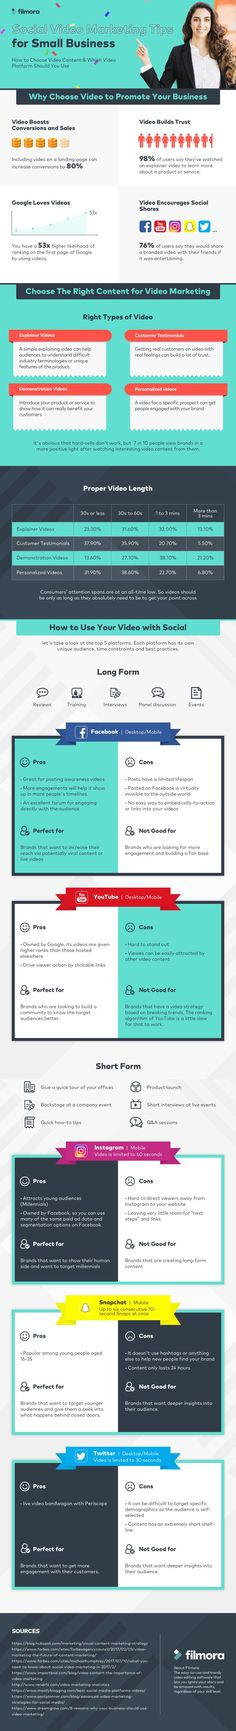 The Right and Wrong Kind of Video for Each Social Media Site (INFOGRAPHIC)